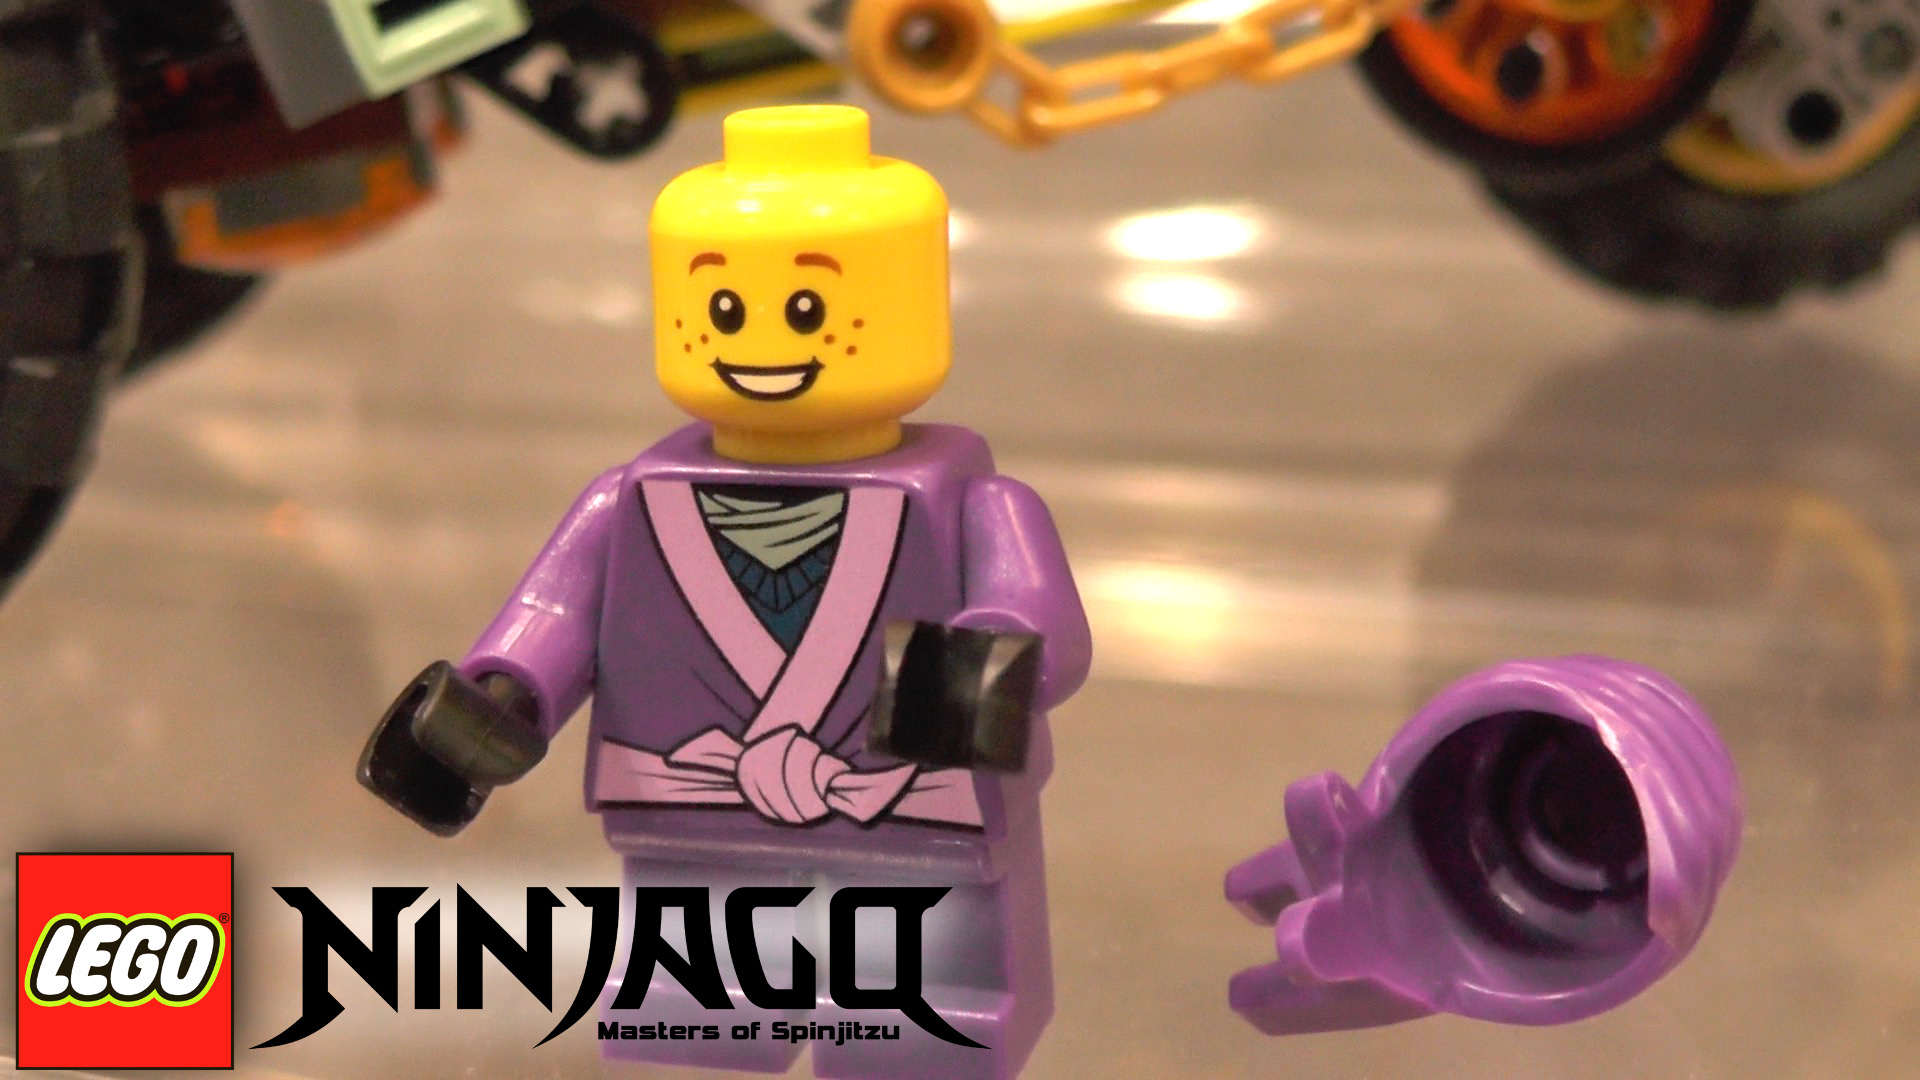 Ninjago's Little Nelson purple mini-figure spotted at Toy Fair